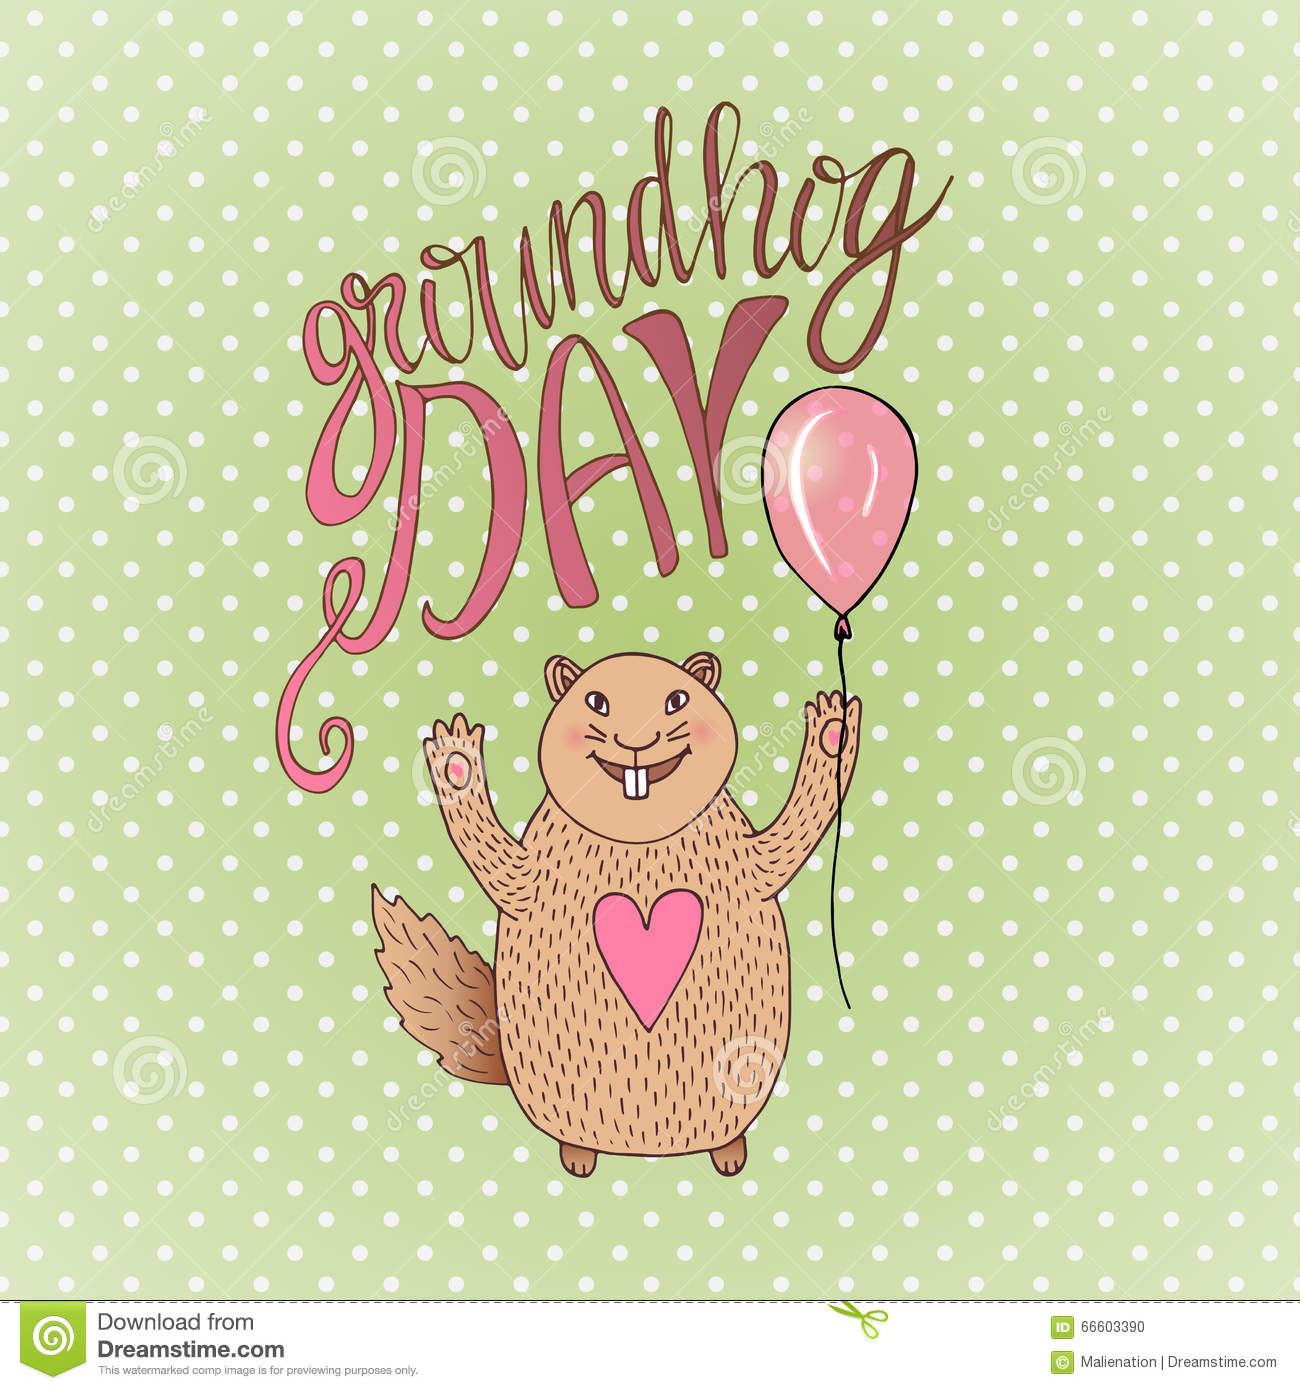 Groundhog Day Gift Card Hand Drawn Beautiful Smiling Hamster